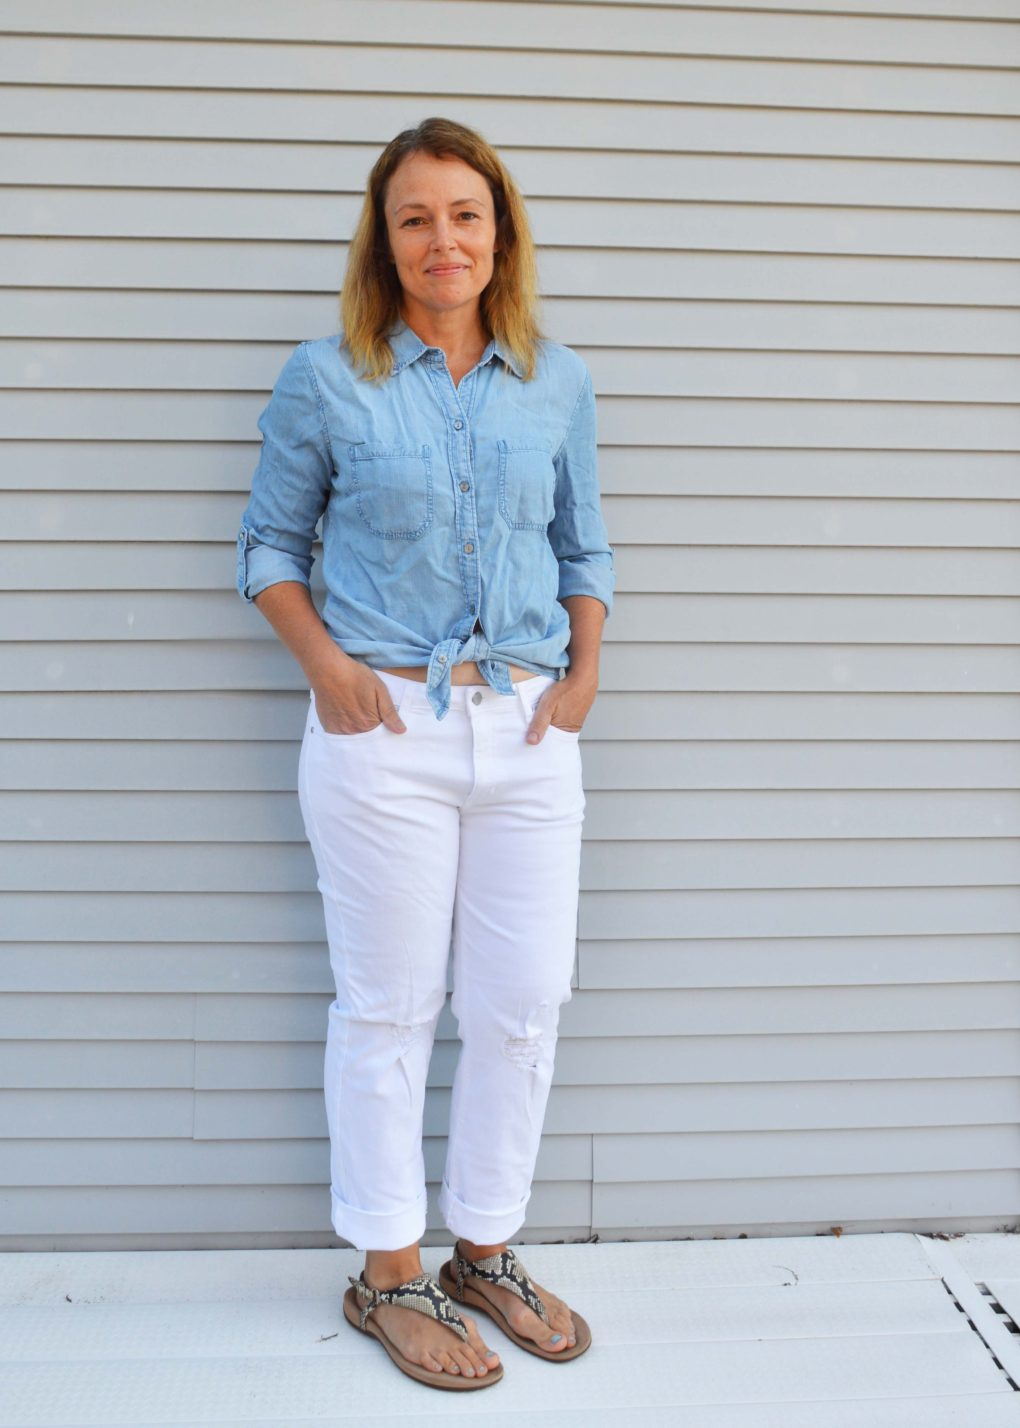 Chambray shirt knotted with white jeans and sandals